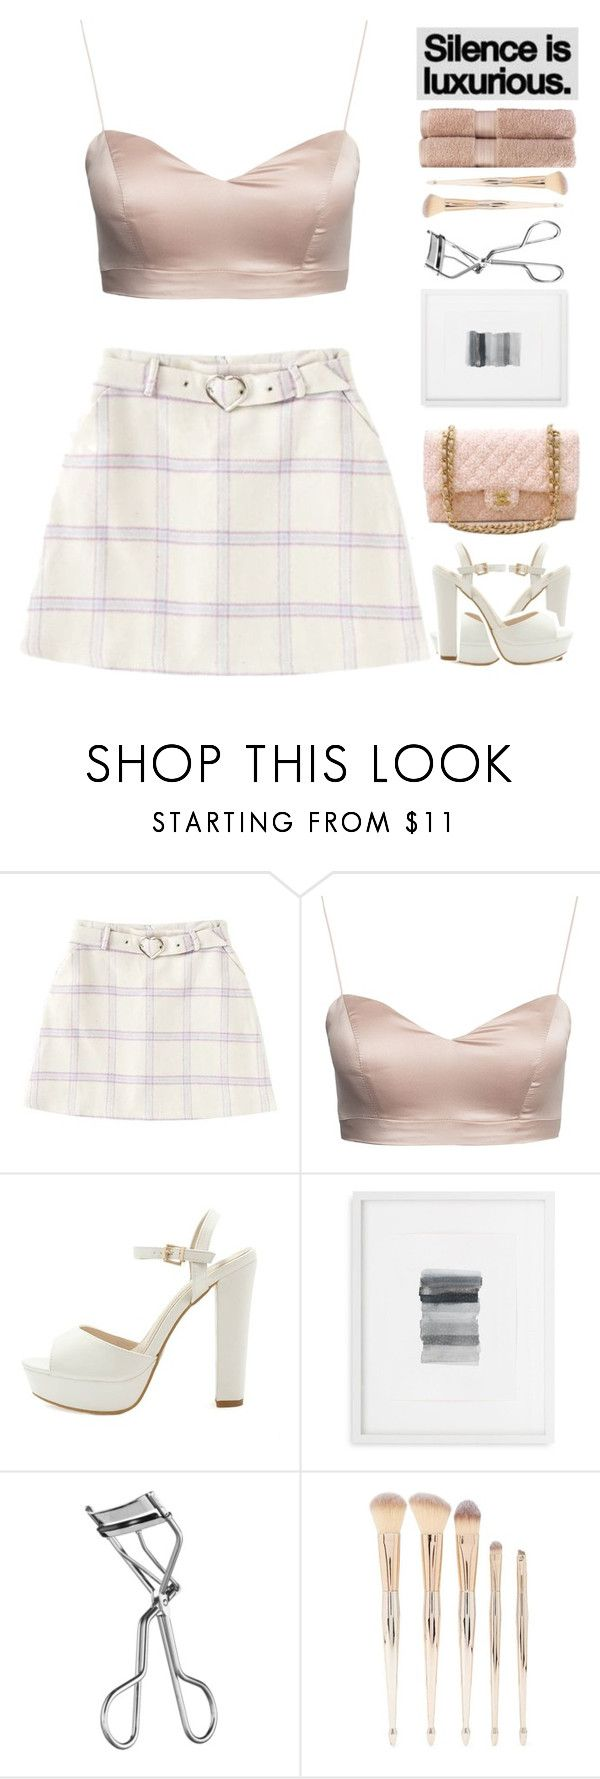 """""""76. you just want attention, you don't want my heart"""" by xo-ashlyn-ox ❤ liked on Polyvore featuring Chanel, Mitchell Gold + Bob Williams, Lancôme, Forever 21 and Christy"""